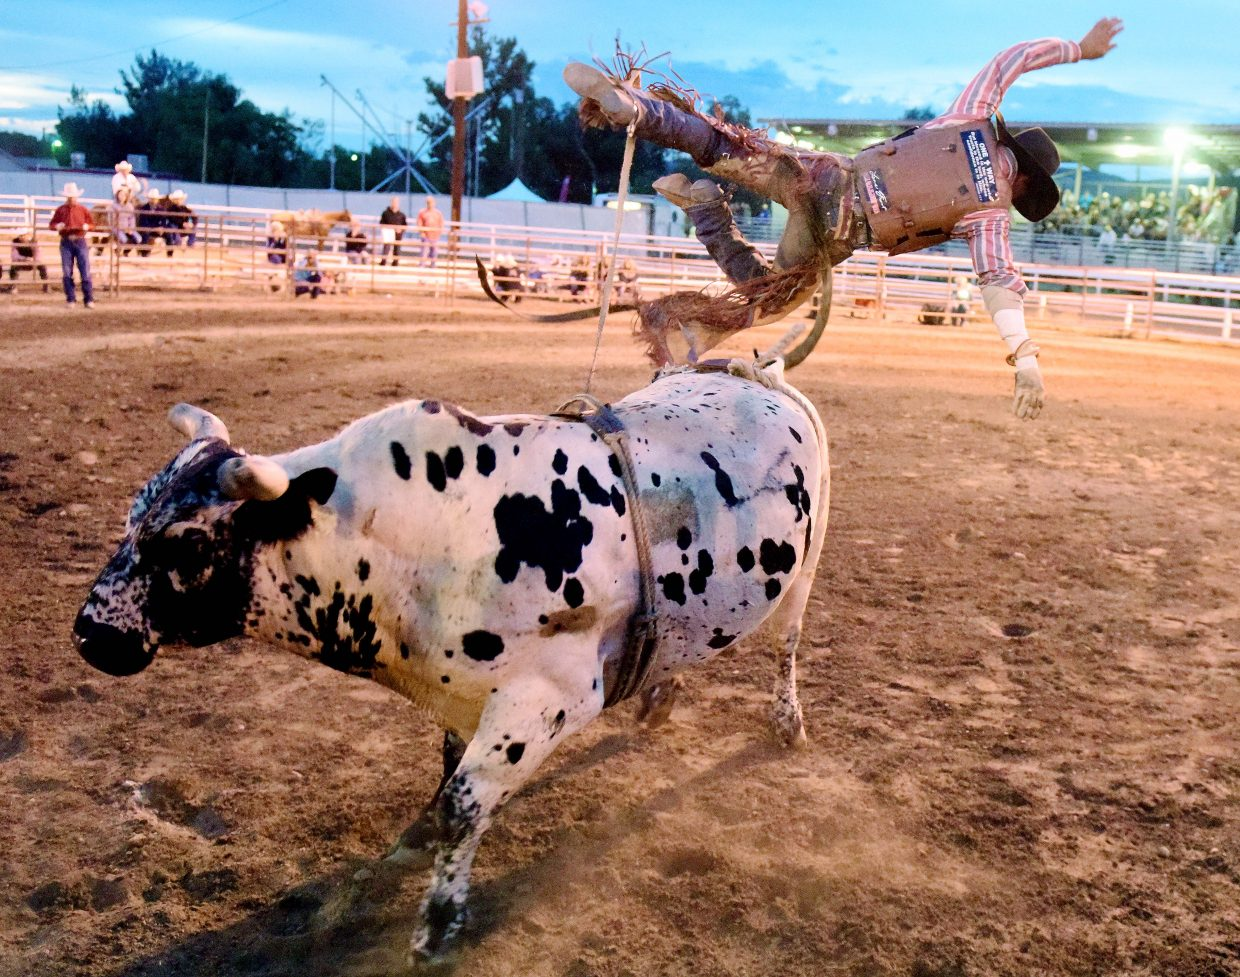 Dillon Kujala, from Burns, flies far off his bull, Funky Monkey, Thursday during the Jake Booco Invitational Bull Riding at the Routt County Fair in Hayden. Kujala landed hard, but only after he registered one of the night's few eight-second rides. He had a score of 84.